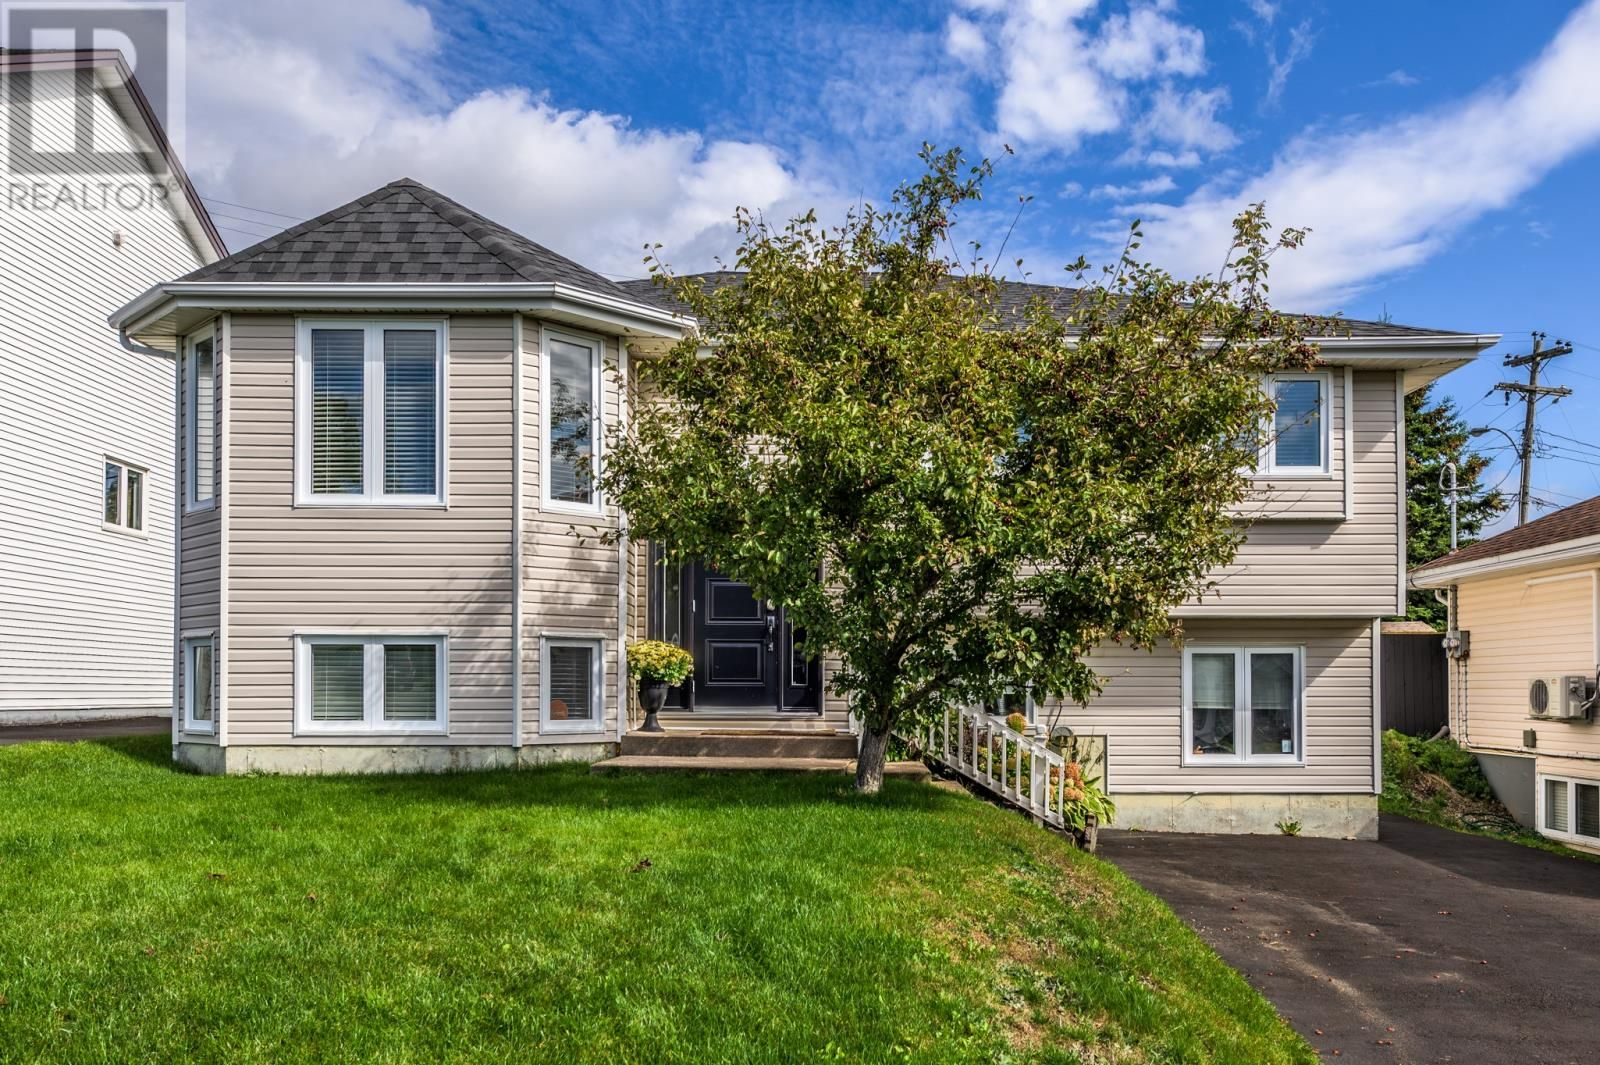 Main Photo: 4 Eaton Place in St. John's: House for sale : MLS®# 1237793